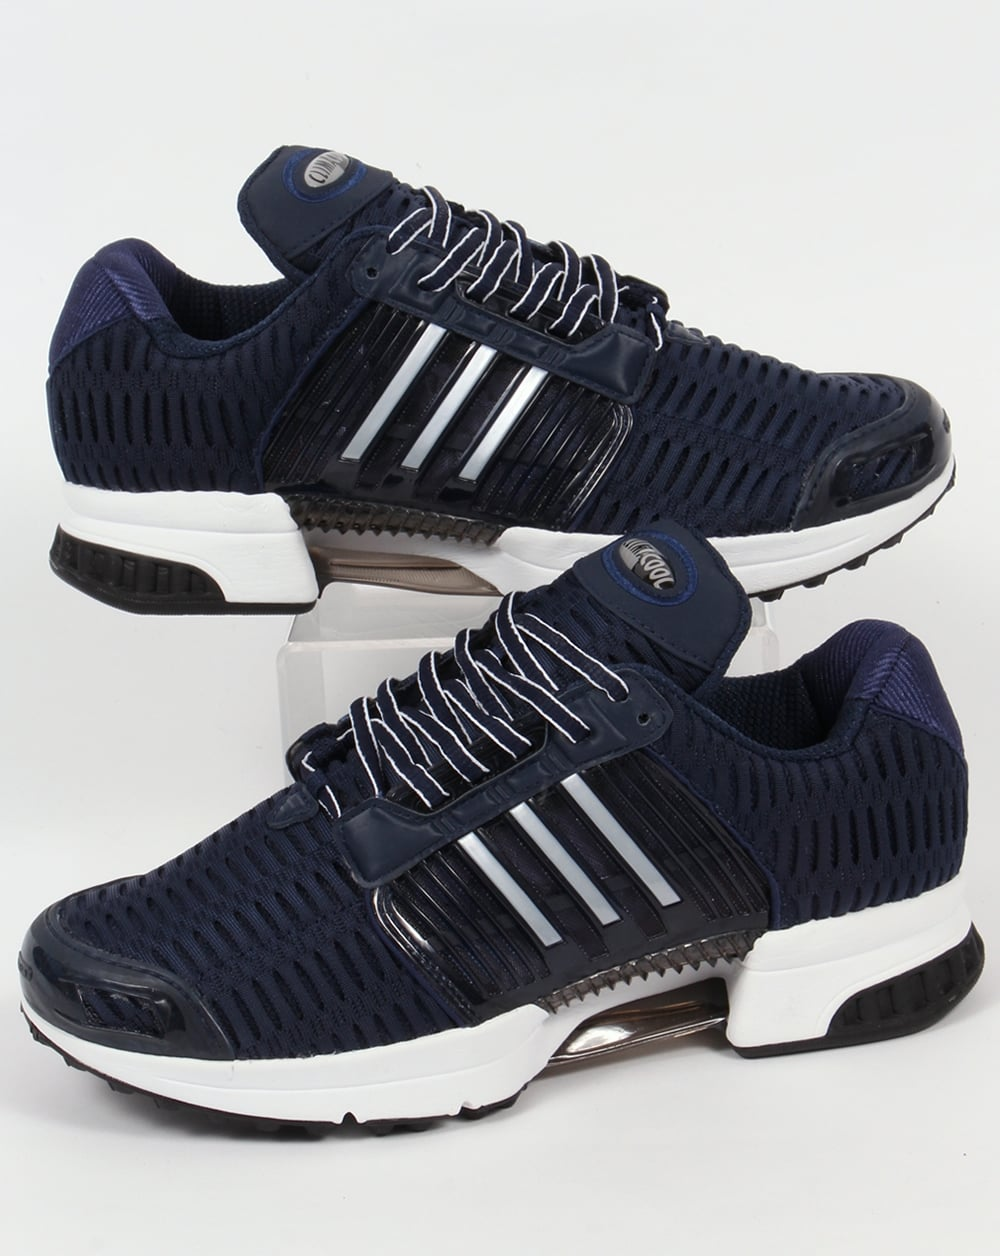 newest f3d07 01c47 adidas Trainers Adidas Clima Cool 1 Trainers Navy Silver